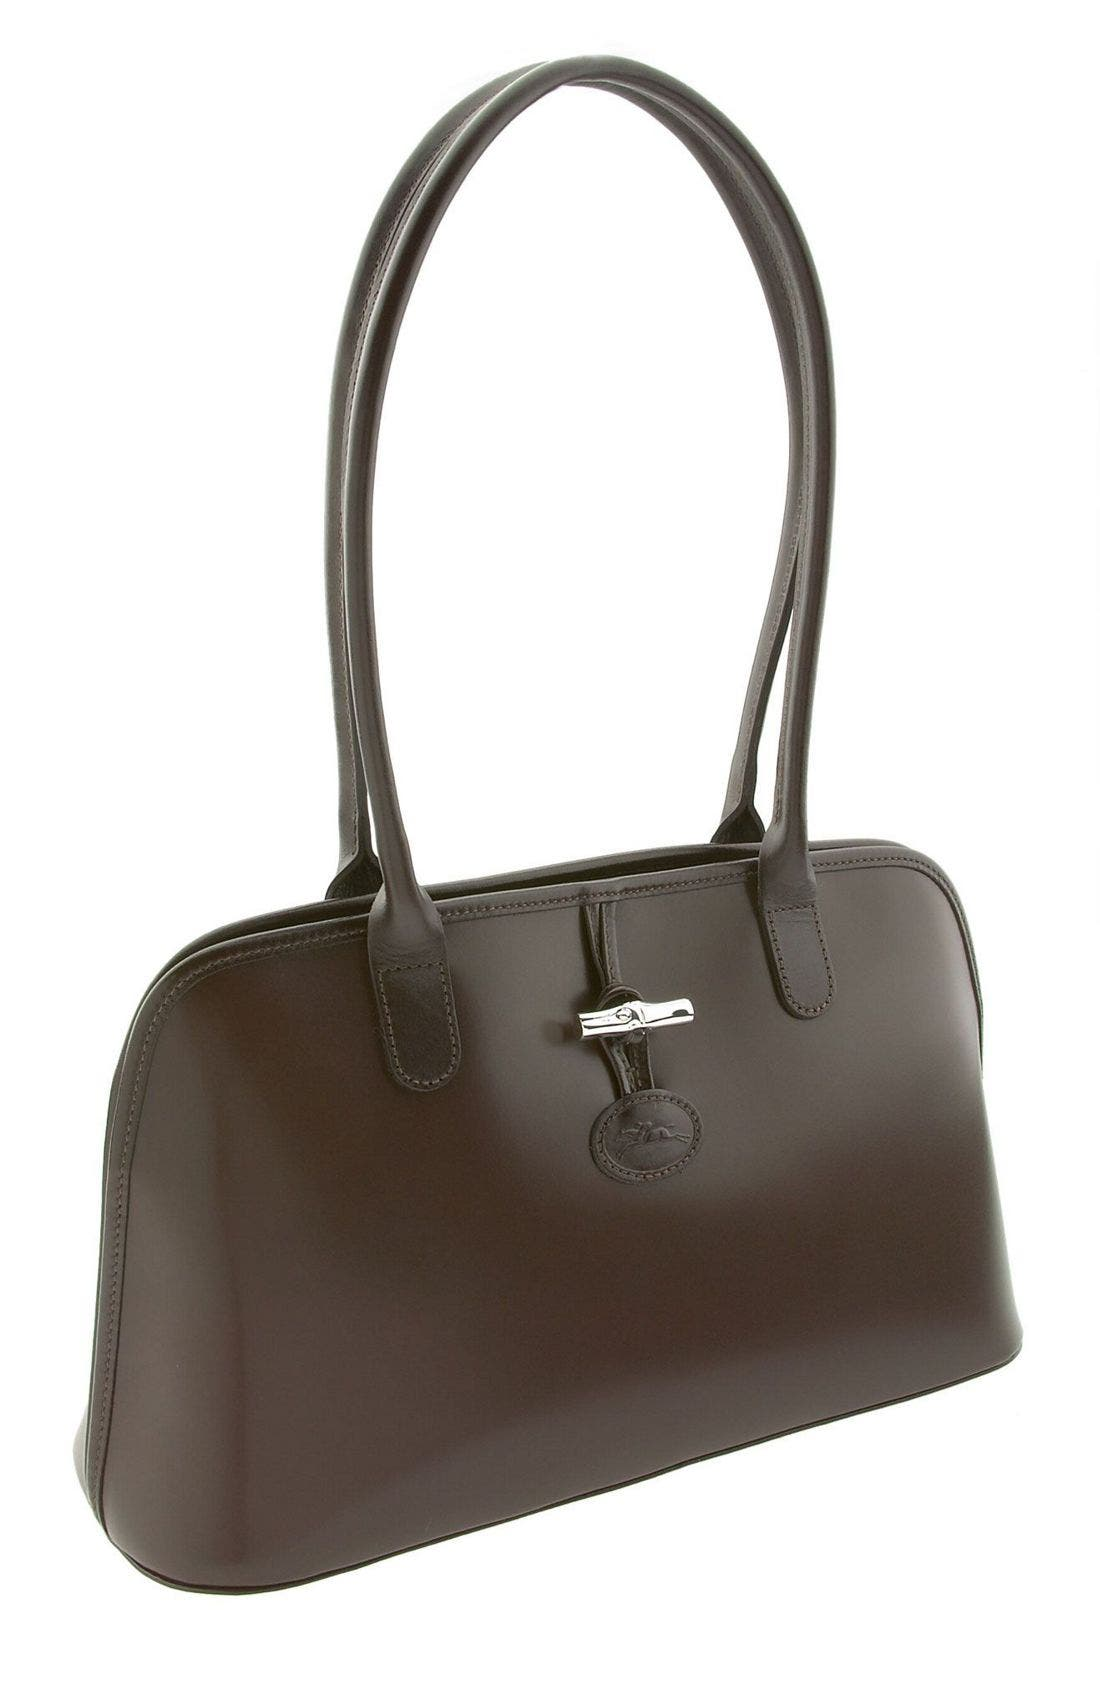 Main Image - Longchamp 'Roseau' Dome Satchel